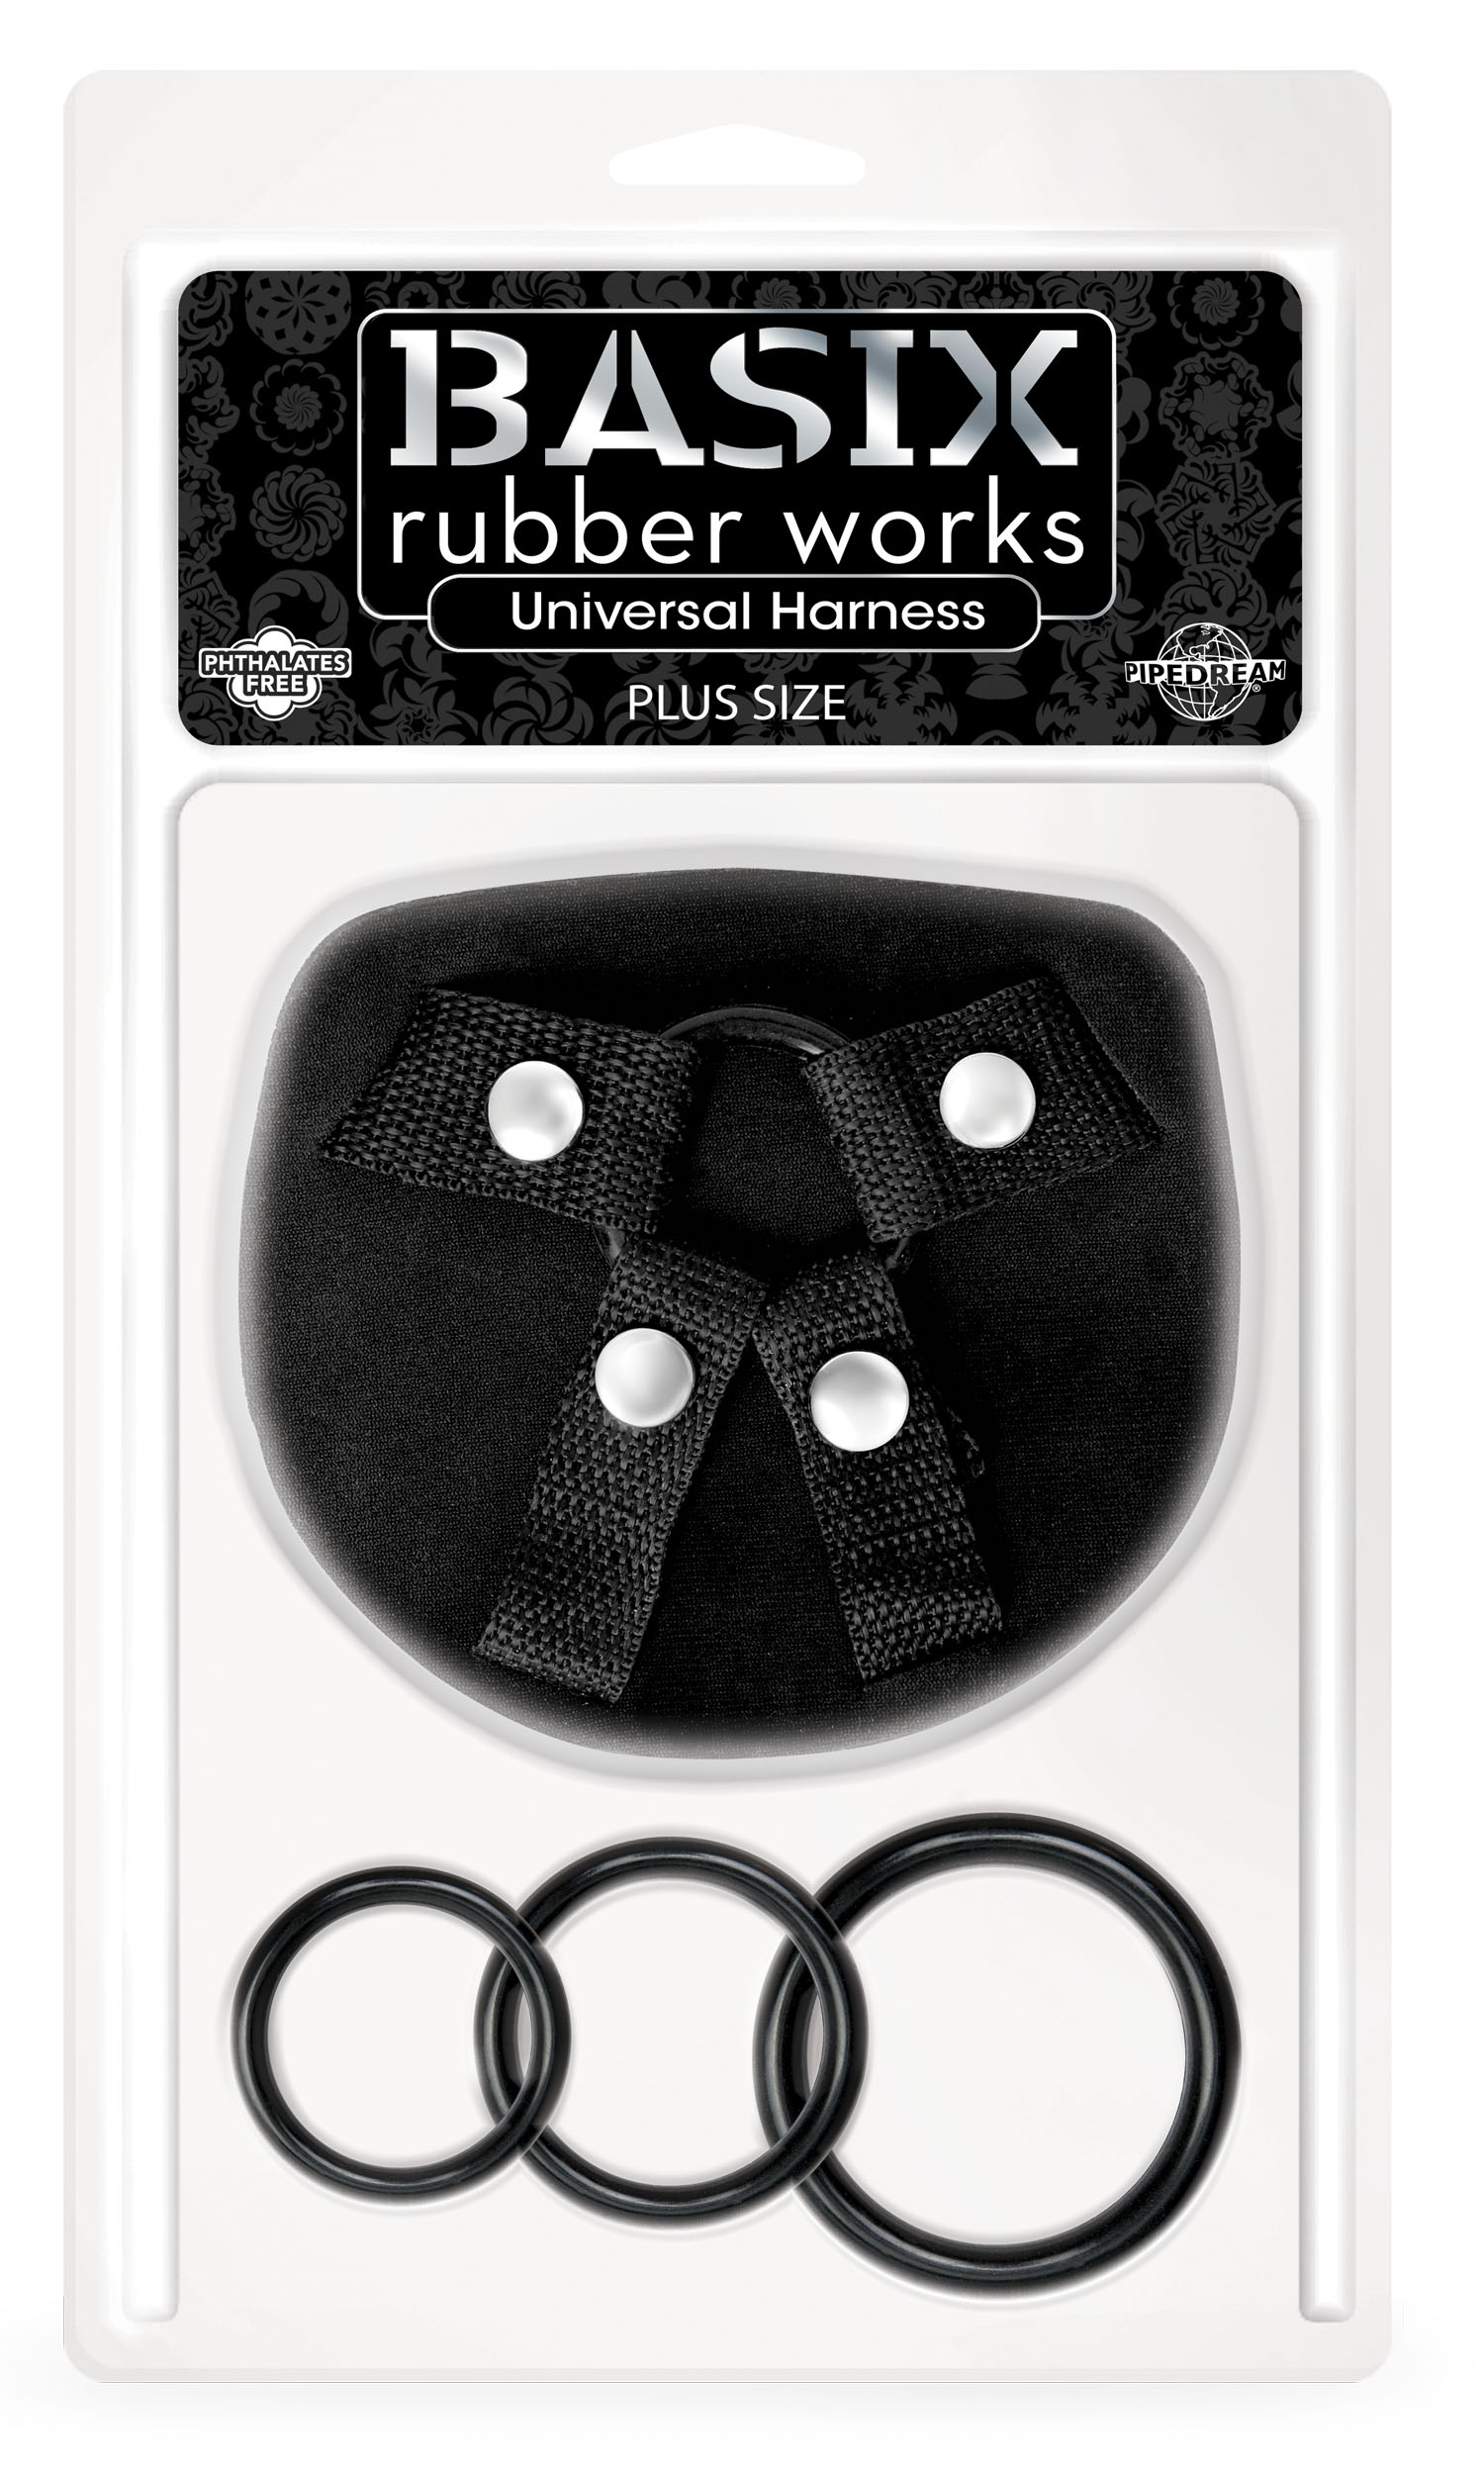 BASIX RUBBER WORKS UNIVERSAL HARNESS PLUS SIZE